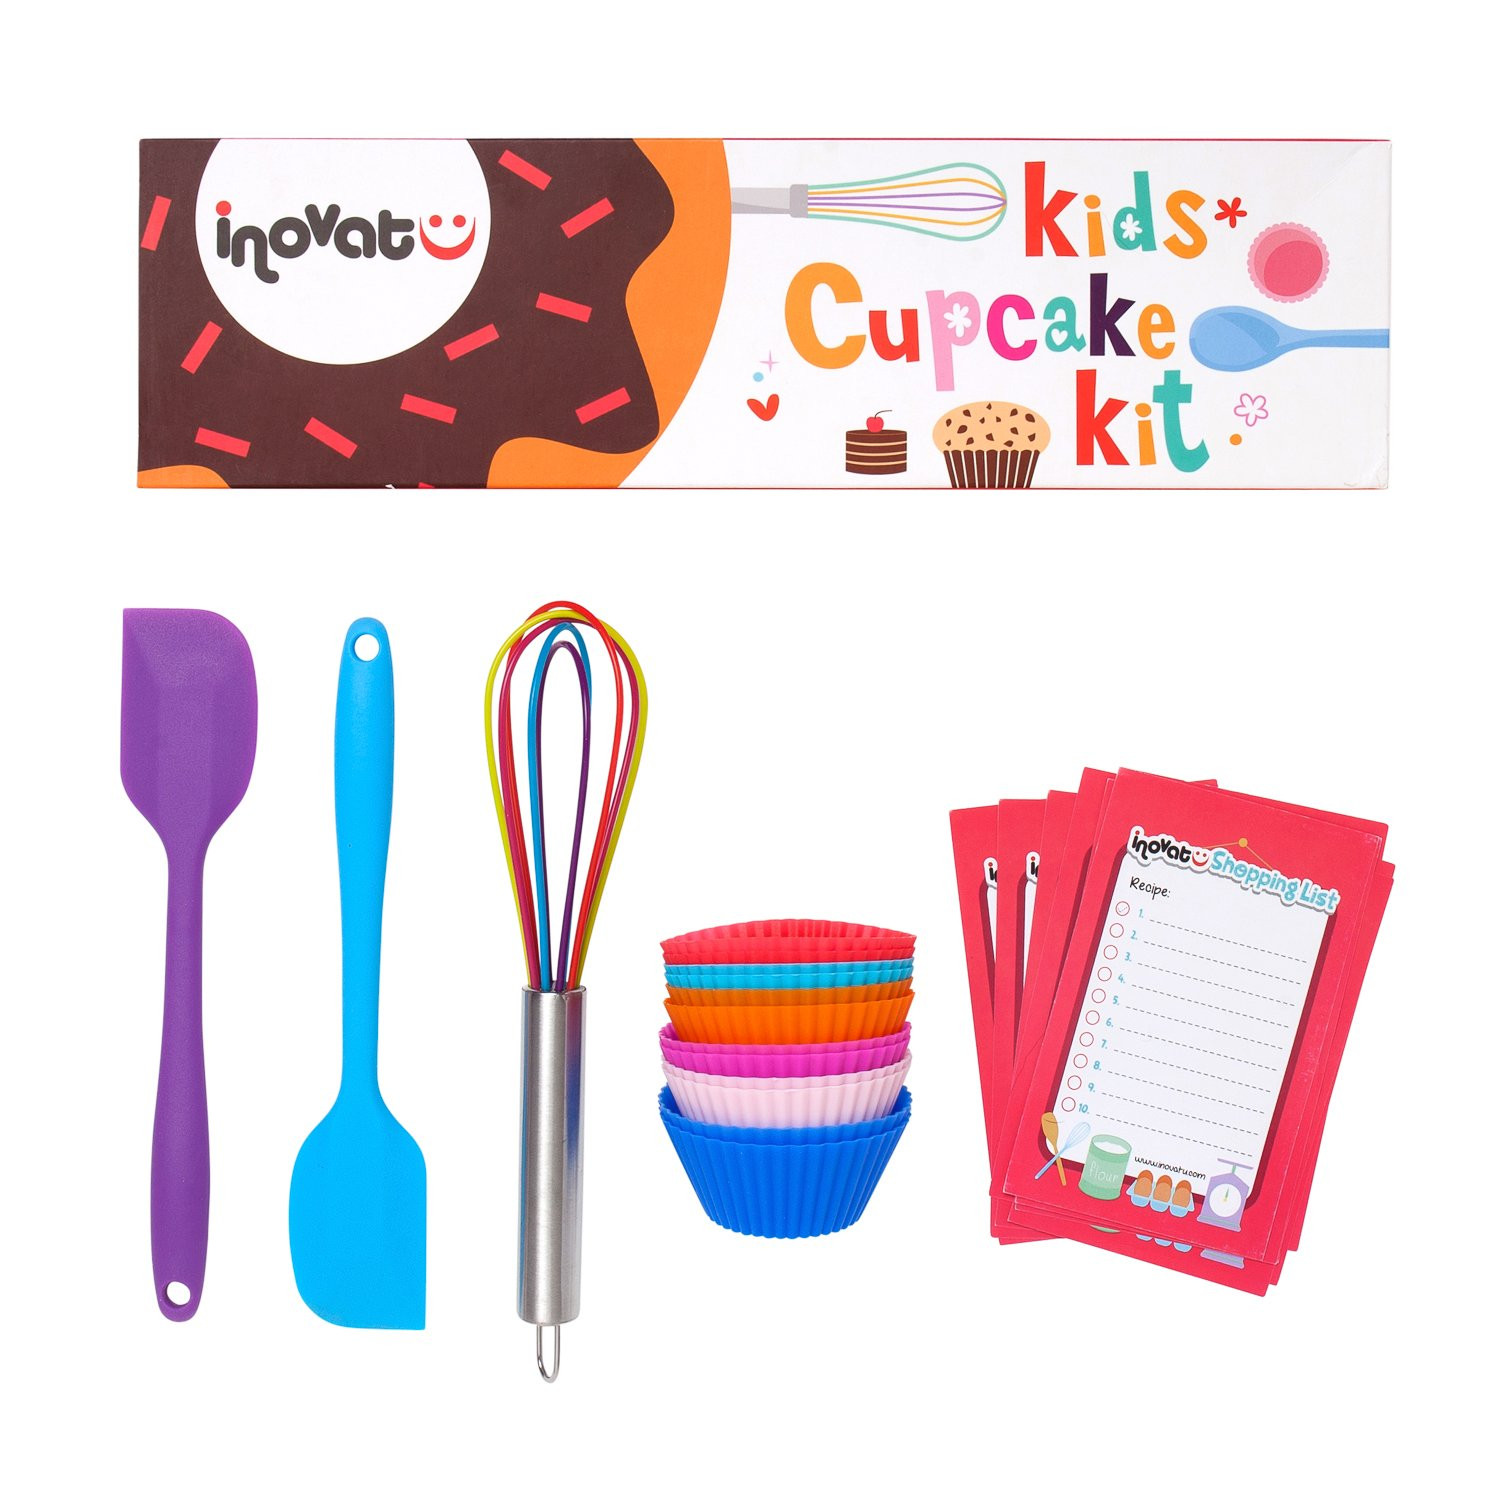 Kids Cupcake Kit / 15 Pieces / Colorful Gift Box / Perfect Kids Baking Set / Quality Whisk, Spatulas and Cupcake Cups / Bonus Shopping Lists and Coupon Inovatu 0265